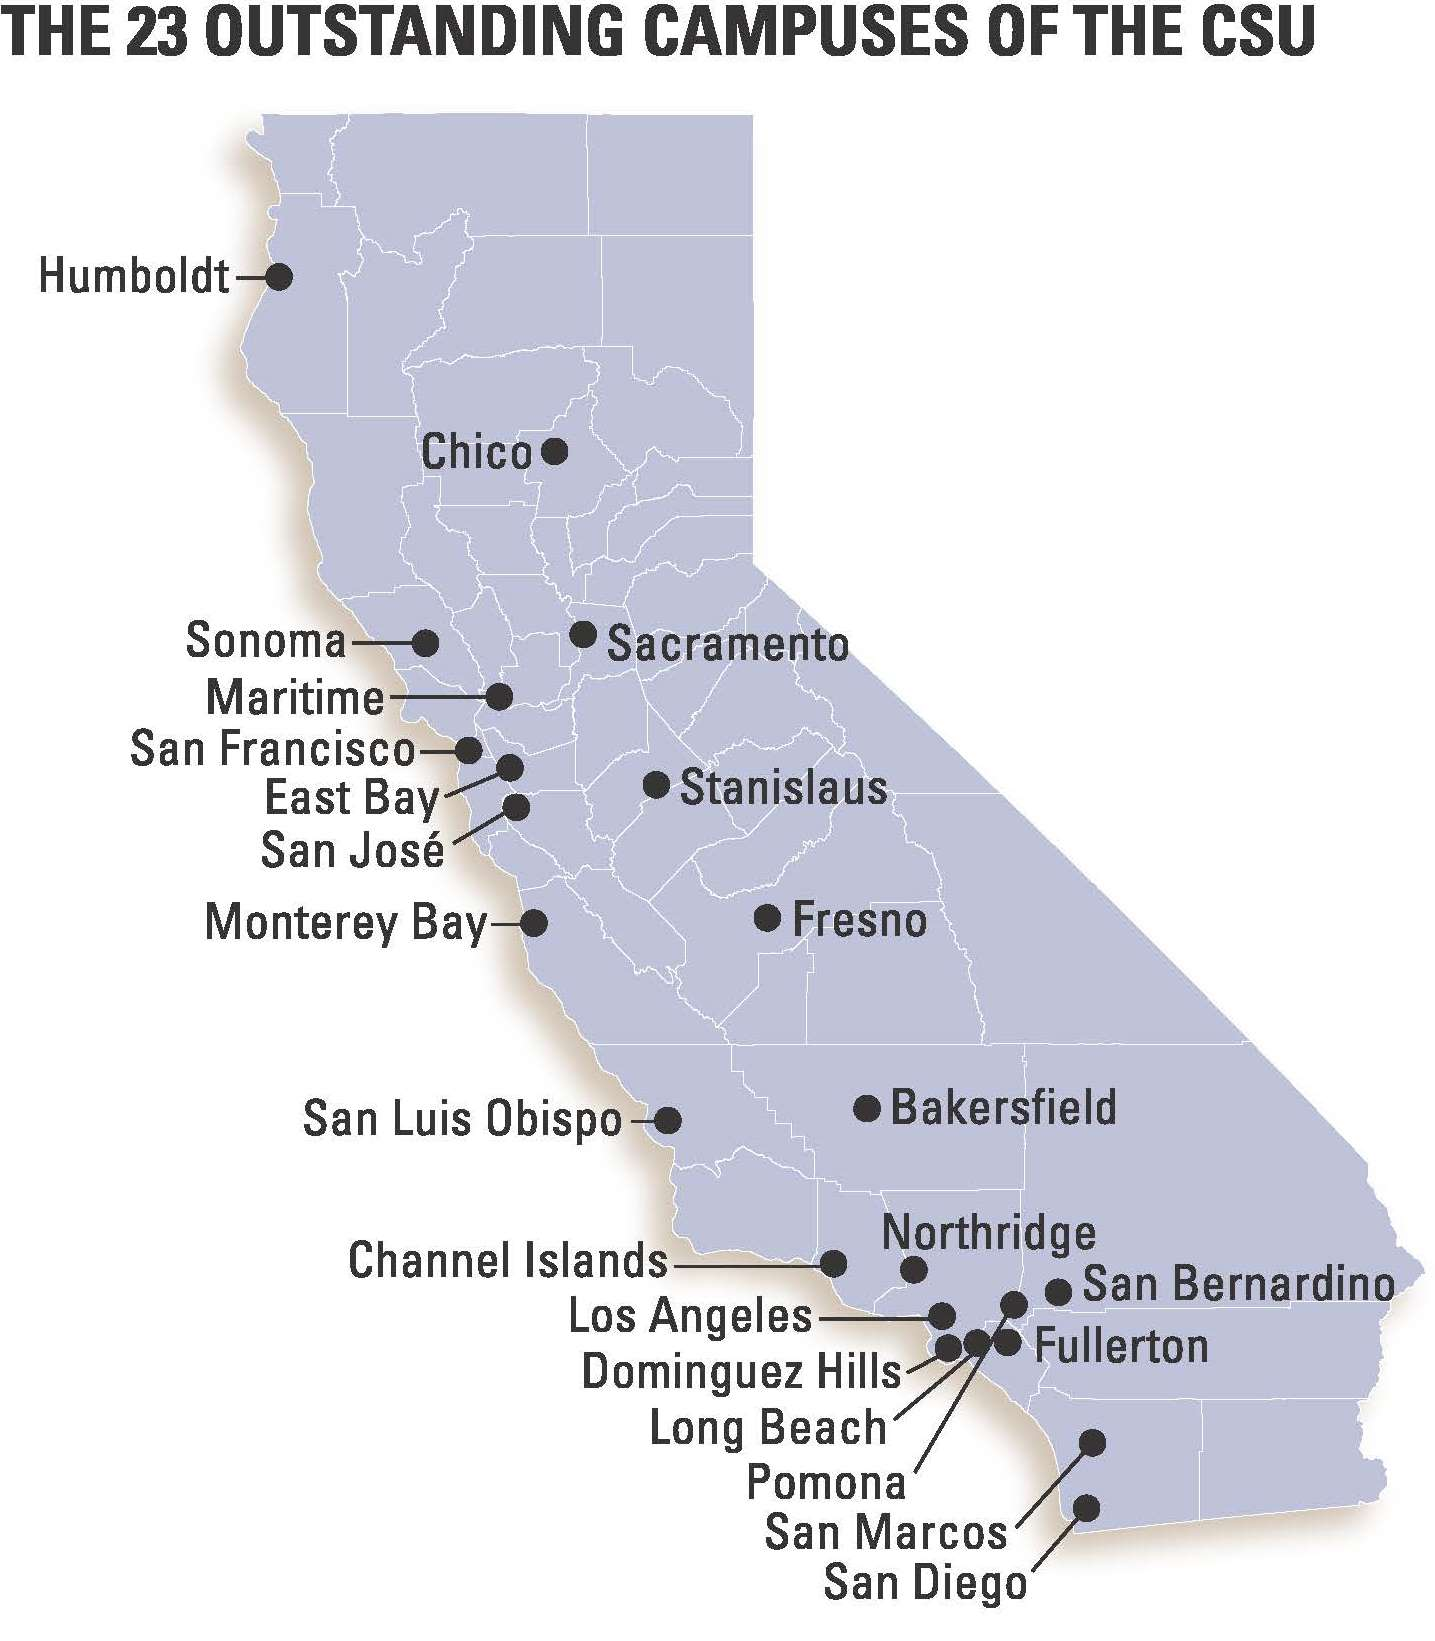 A Map of California Counties and Locations of the 23 CSU Campuses.